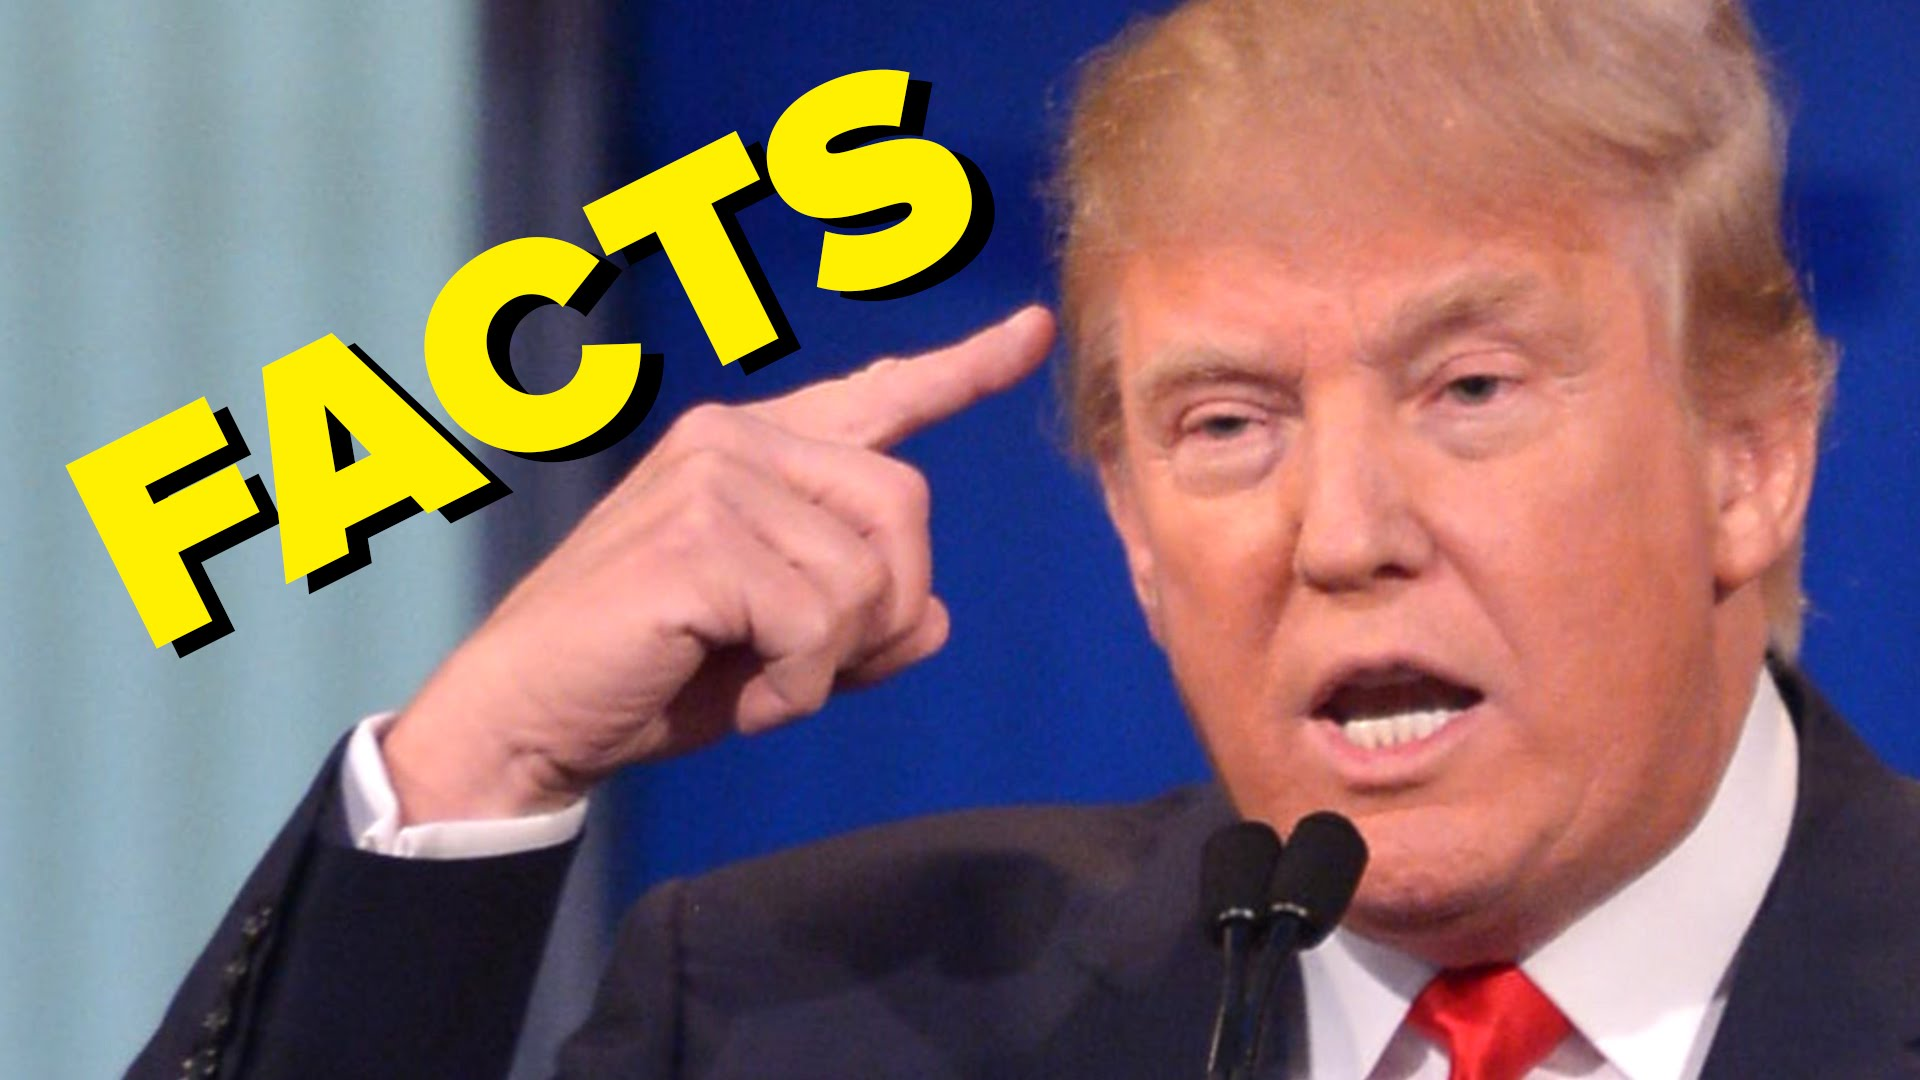 fact vs fiction donald trump inauguration speech 2017 images